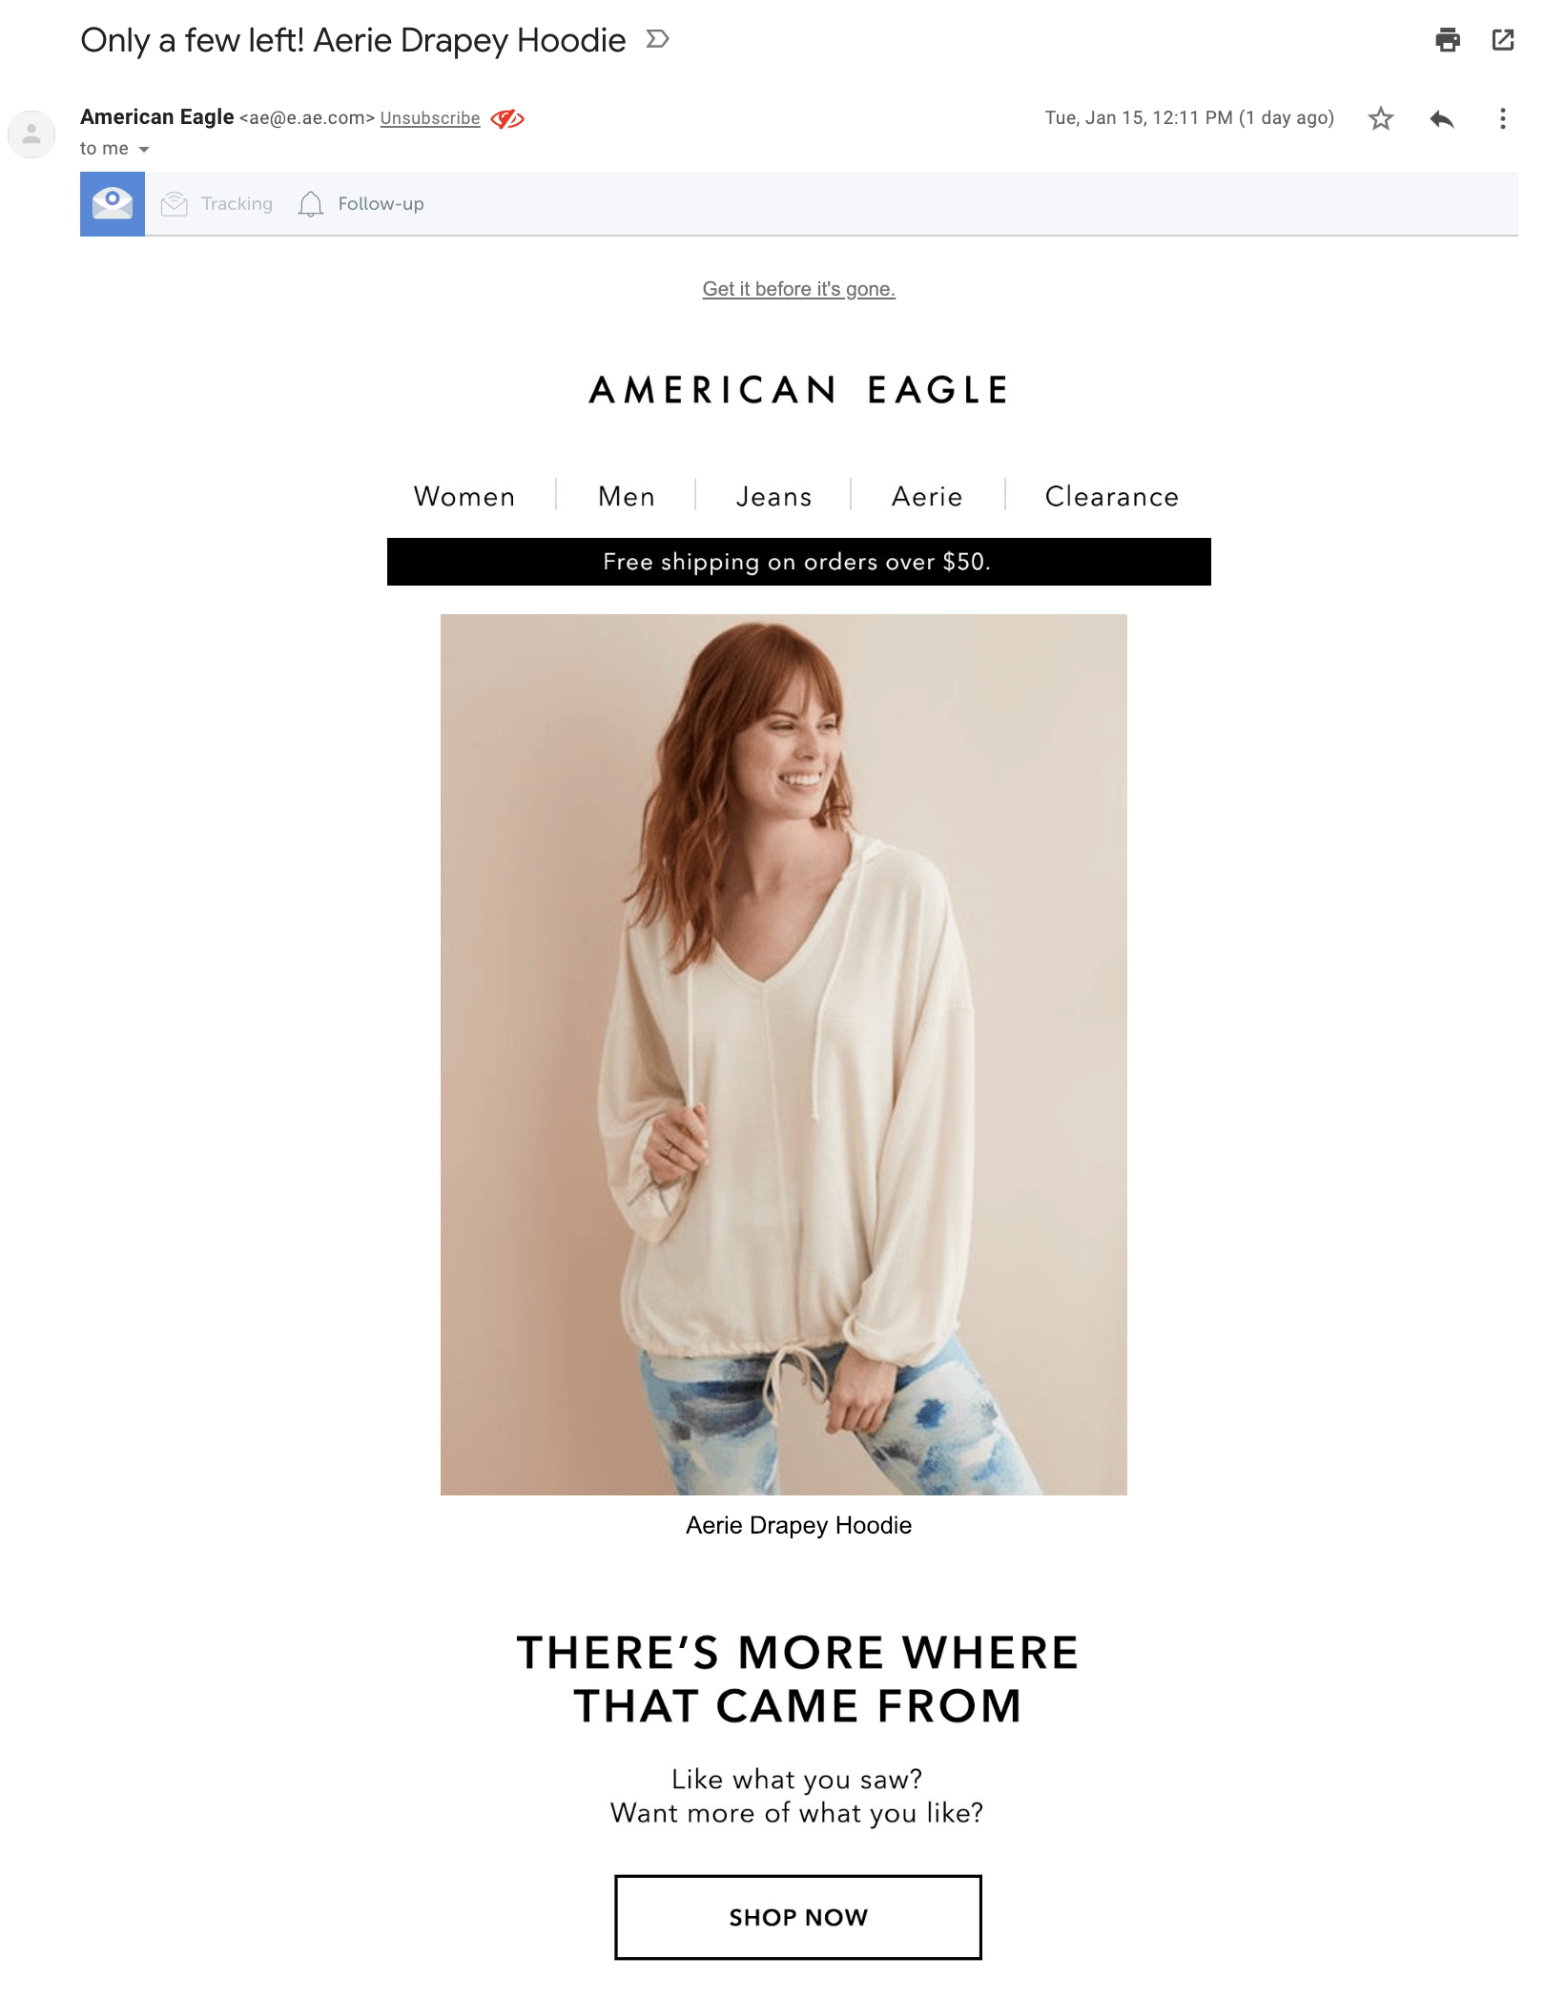 American Eagle's abandoned cart email